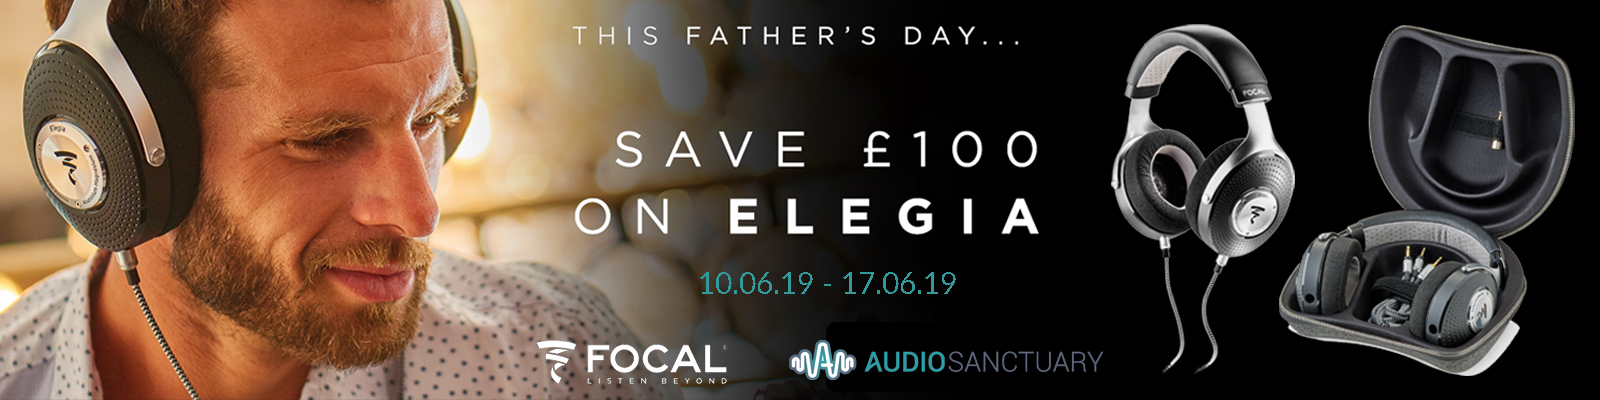 Focal Elegia Closed-Back Headphones | Fathers Day 2019 Offer